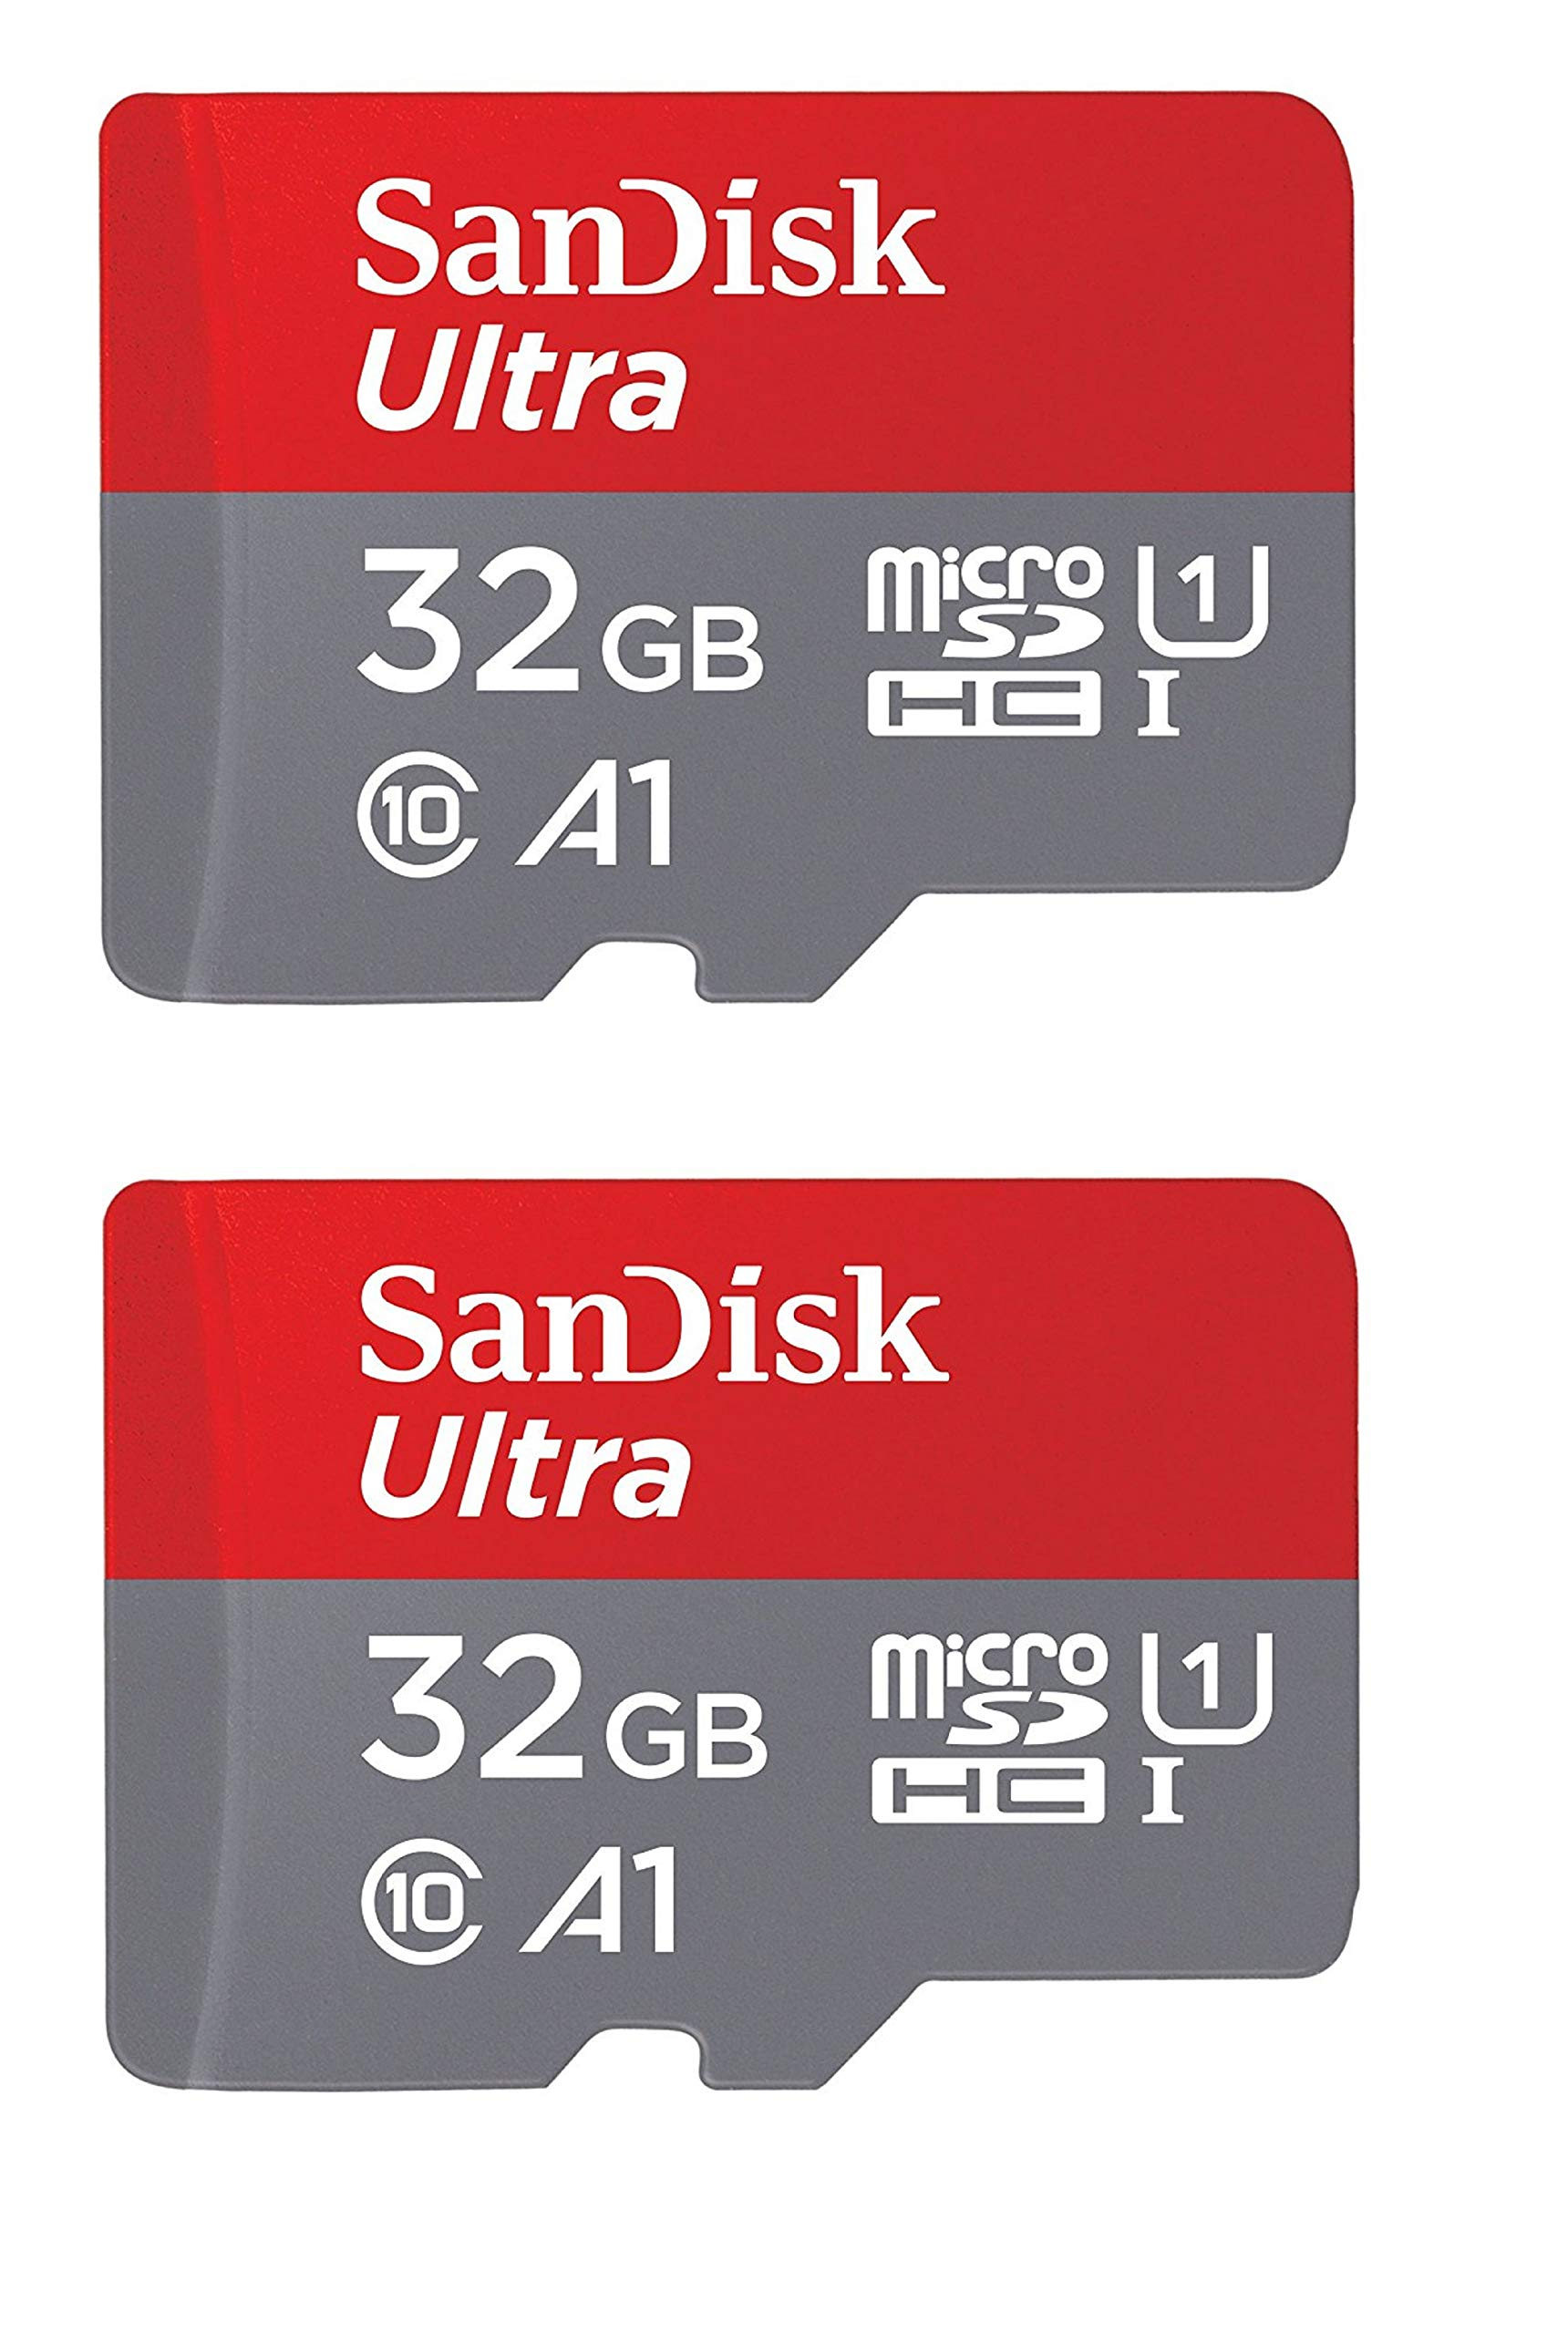 SanDisk 32GB X2 (64GB) MicroSD HC Ultra Uhs-1 Memory Card with SD Adapter by SanDisk